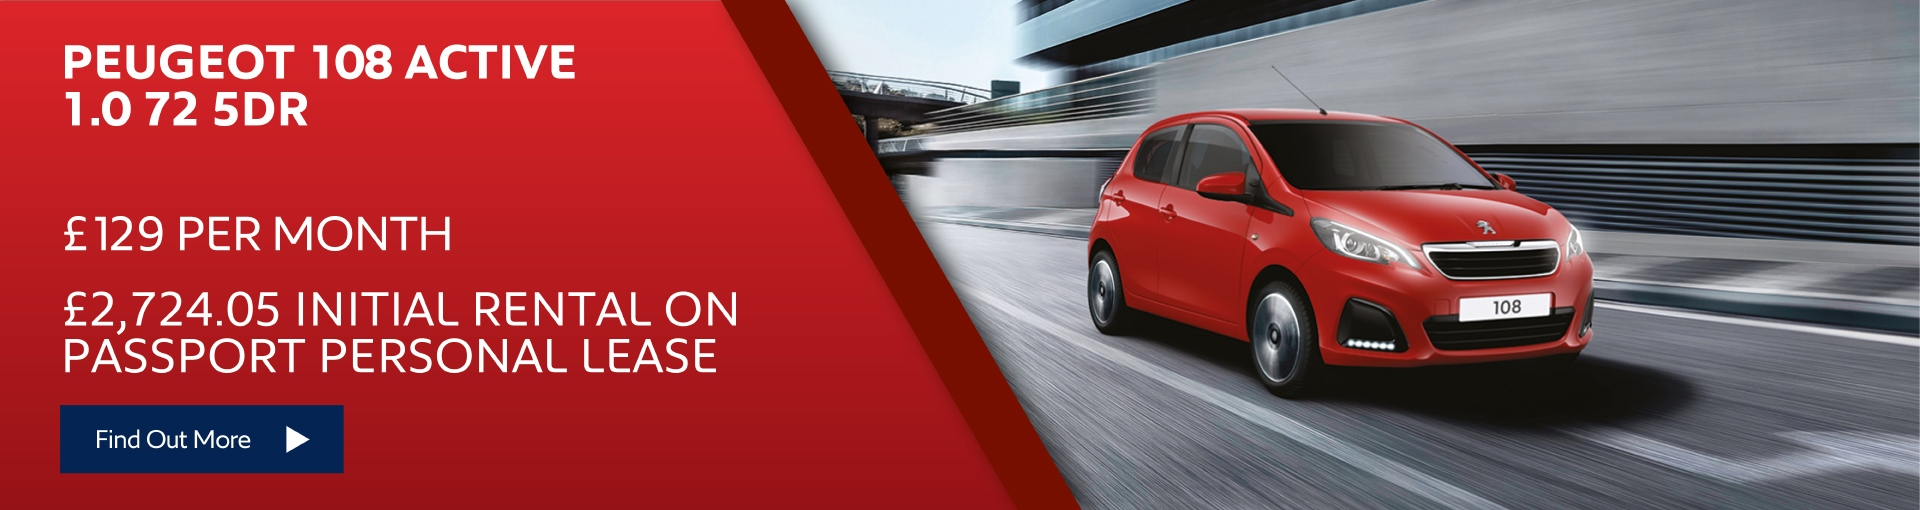 New Peugeot 108 Active - £129 per month